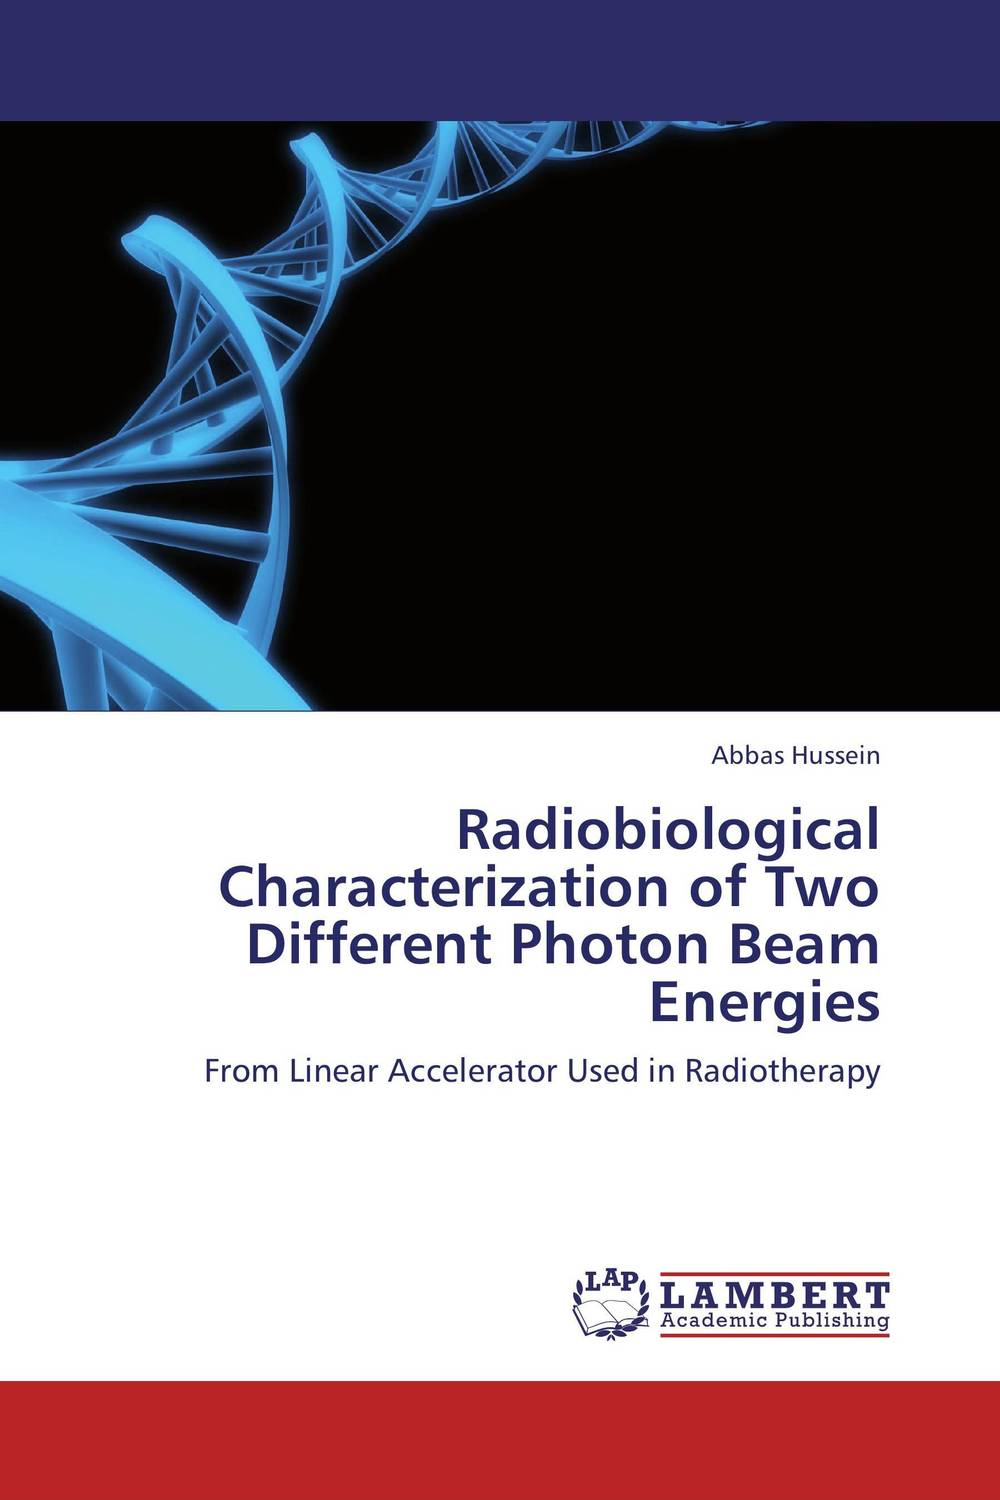 Radiobiological Characterization of Two Different Photon Beam Energies monte carlo techniques for electron radiotherapy